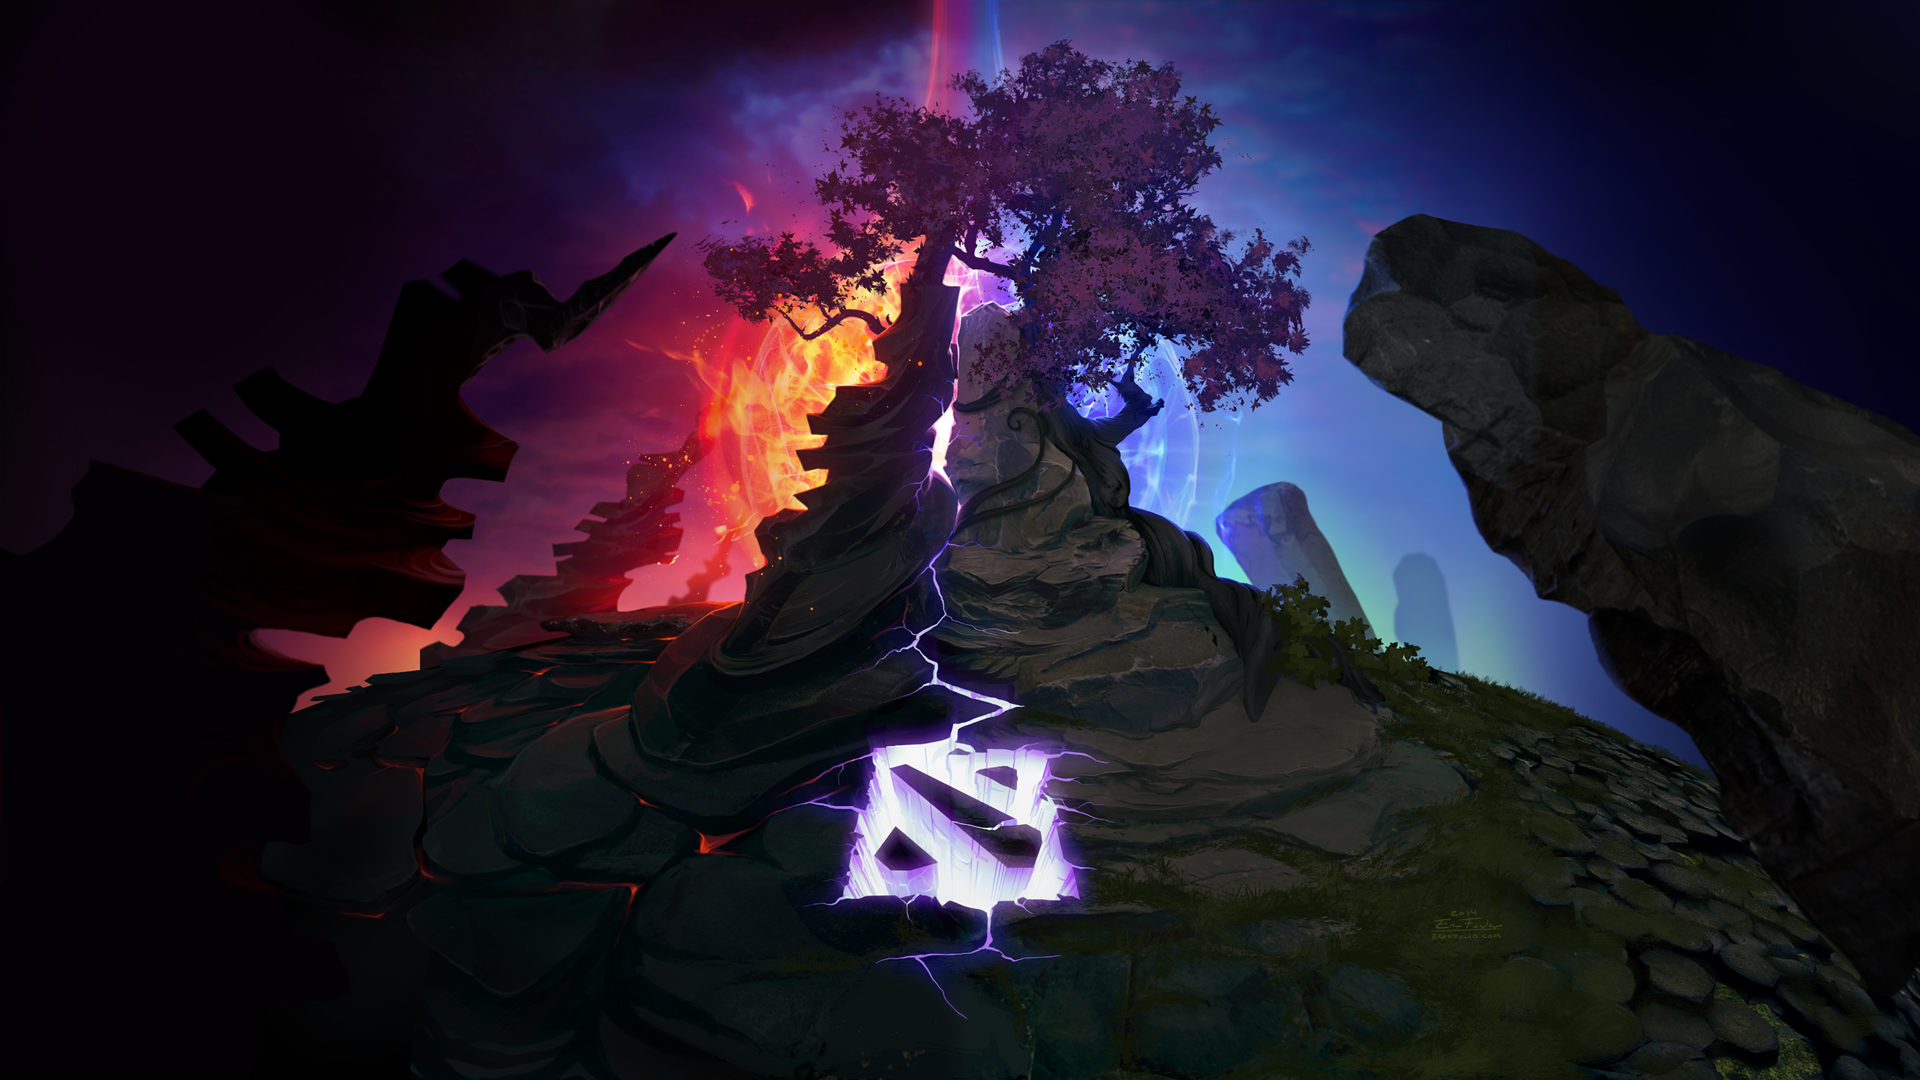 Hd wallpaper dota 2 -  Dota 2 Wallpaper